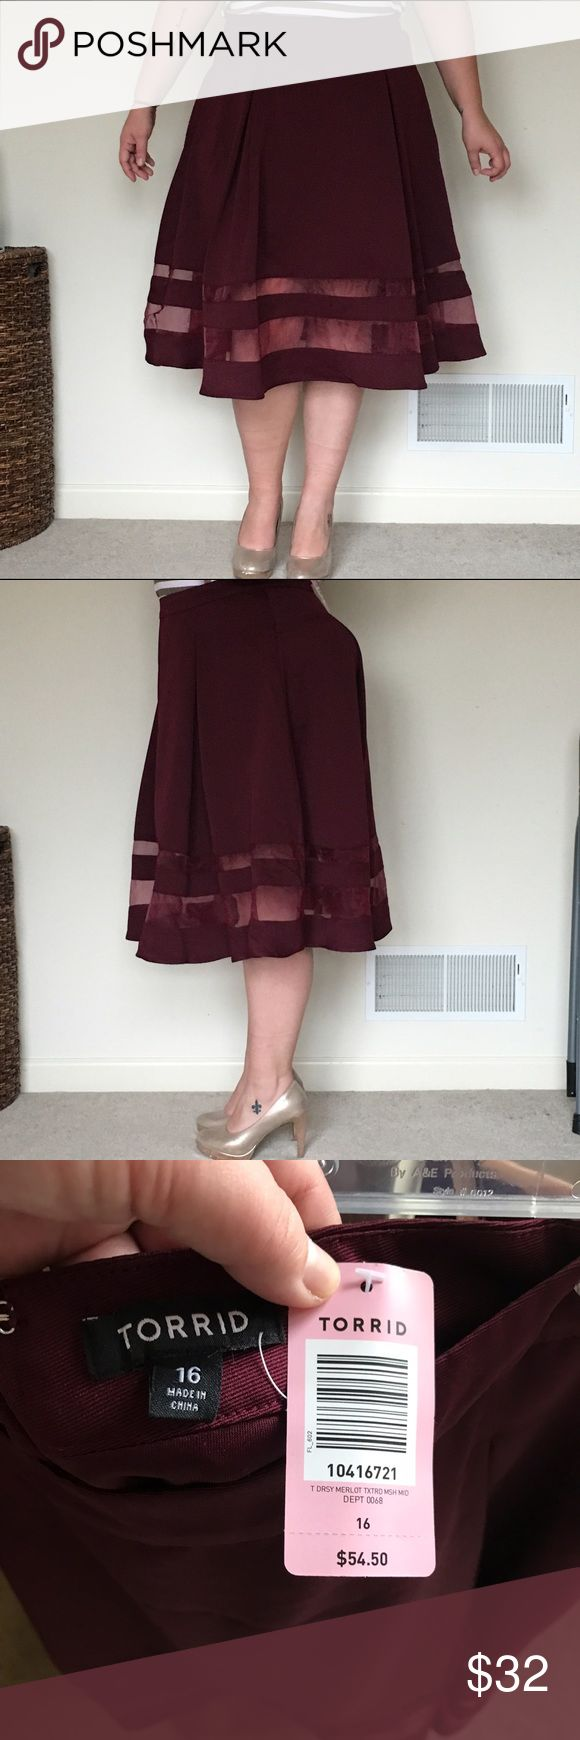 NWT Torrid Cranberry Peek-a-boo Skirt Sz 16 NWT Torrid Cranberry Peek-a-boo Skirt Sz 16. From a smoke free home. Make an offer or bundle to save! torrid Skirts A-Line or Full